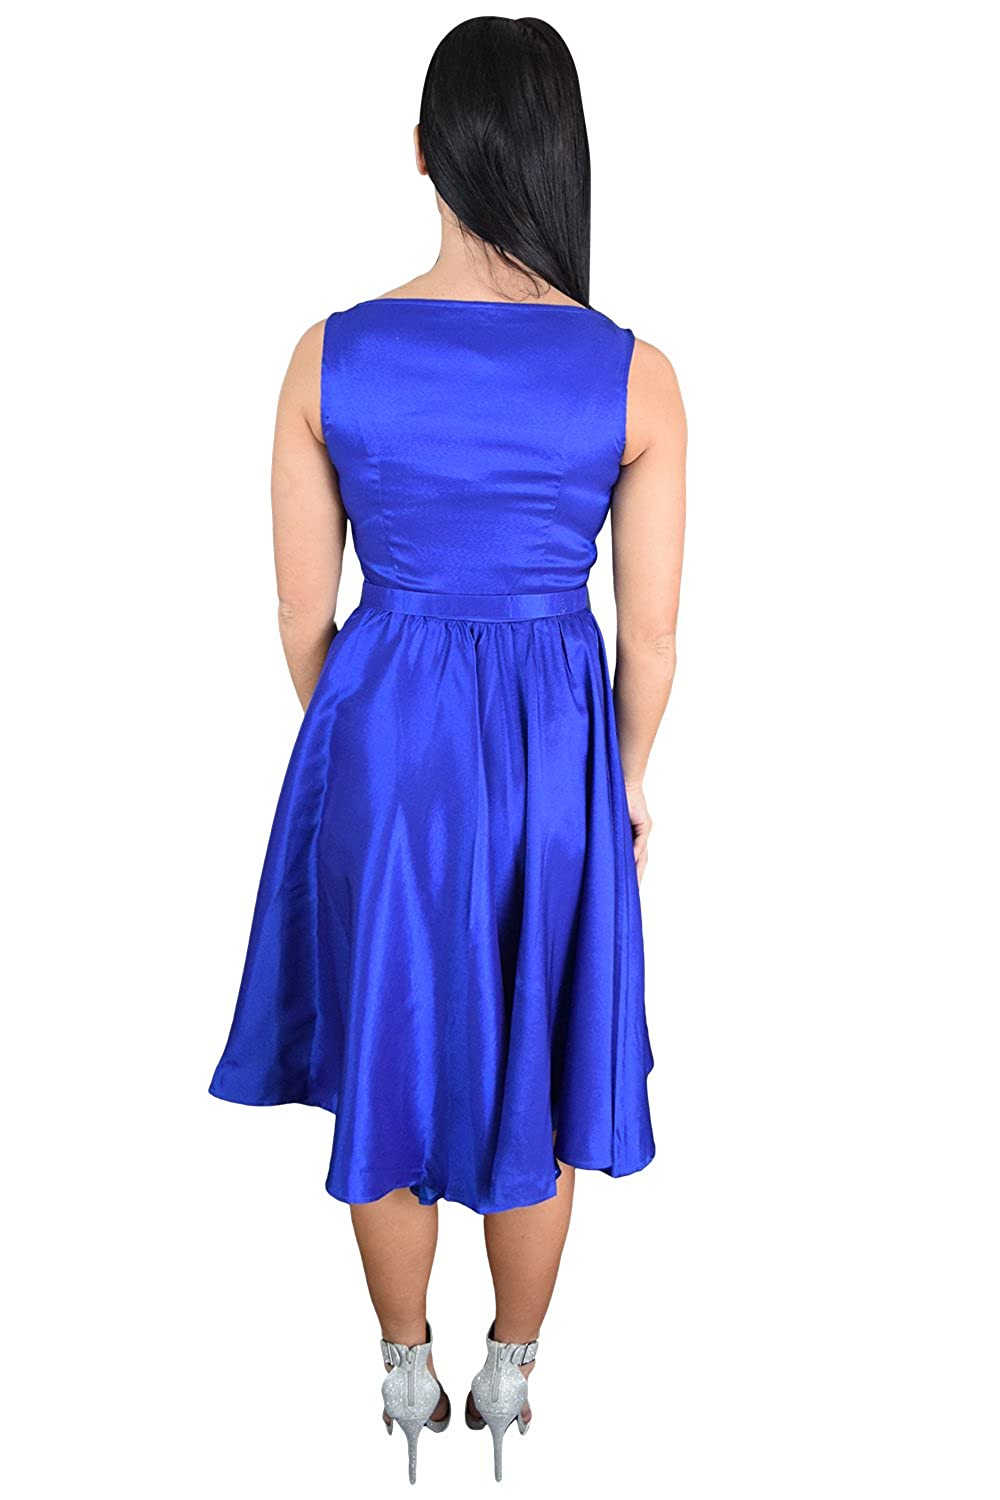 Amazon.com: Skelapparel Rockabilly Pinup Deep Blue Satin Cocktail Flare Party Swing Dress: Clothing